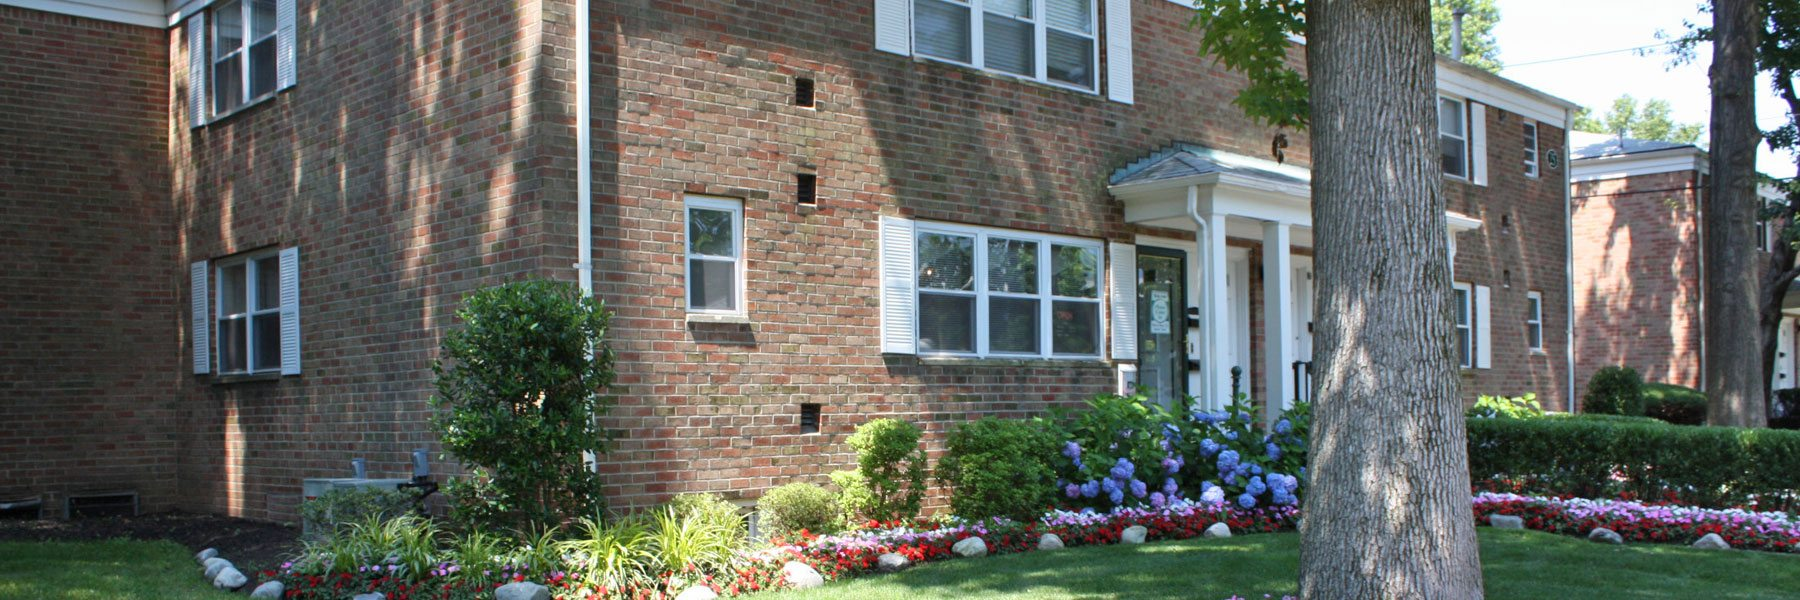 Carlton Club Apartments For Rent in Piscataway, NJ Building View